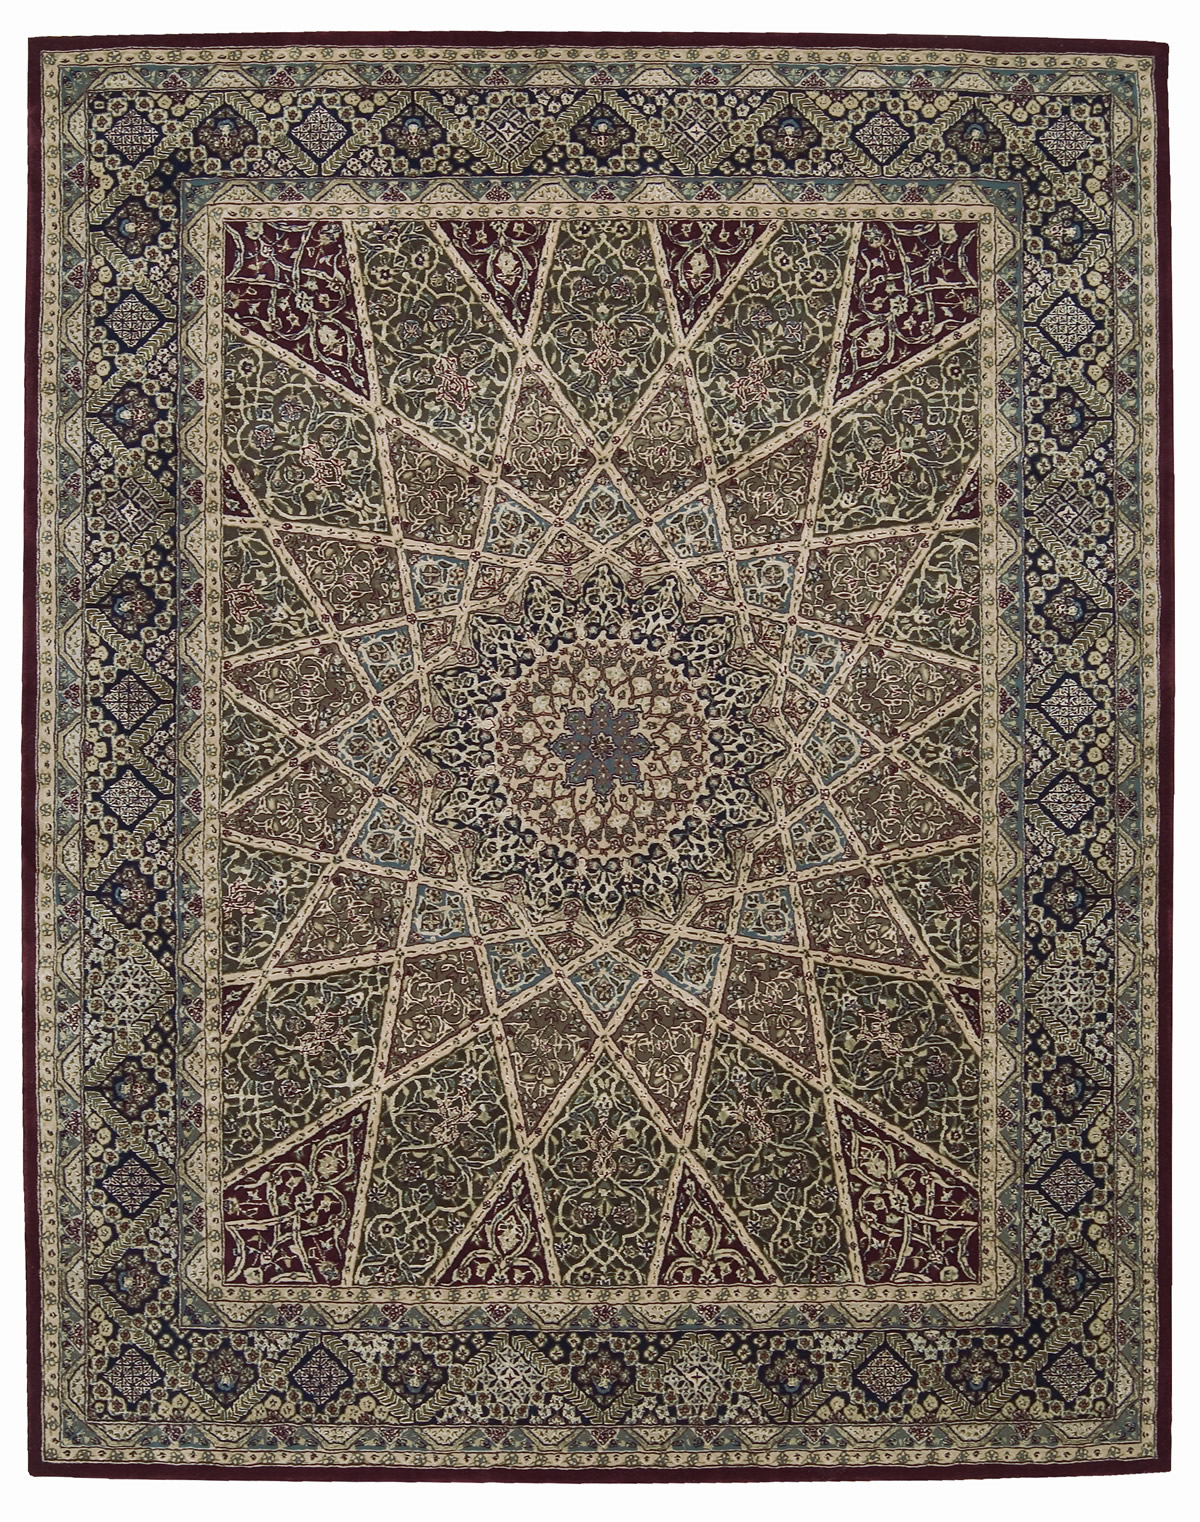 charming rectangle nourison rugs in unique pattern for floor decor ideas